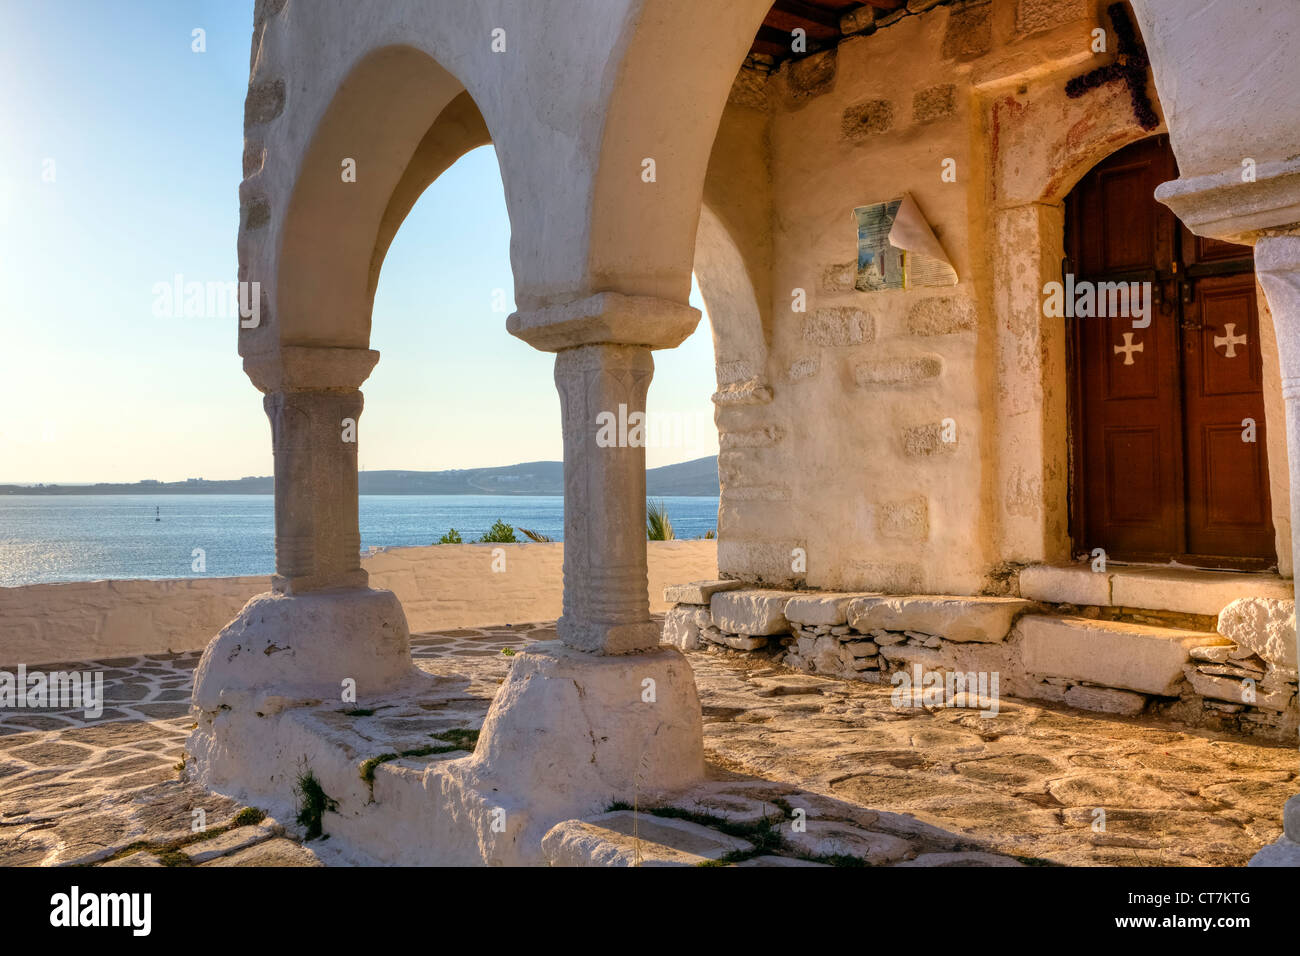 Views of the sea from the portico of the church of Agios Konstantinos, Paros, Cyclades, Greece - Stock Image